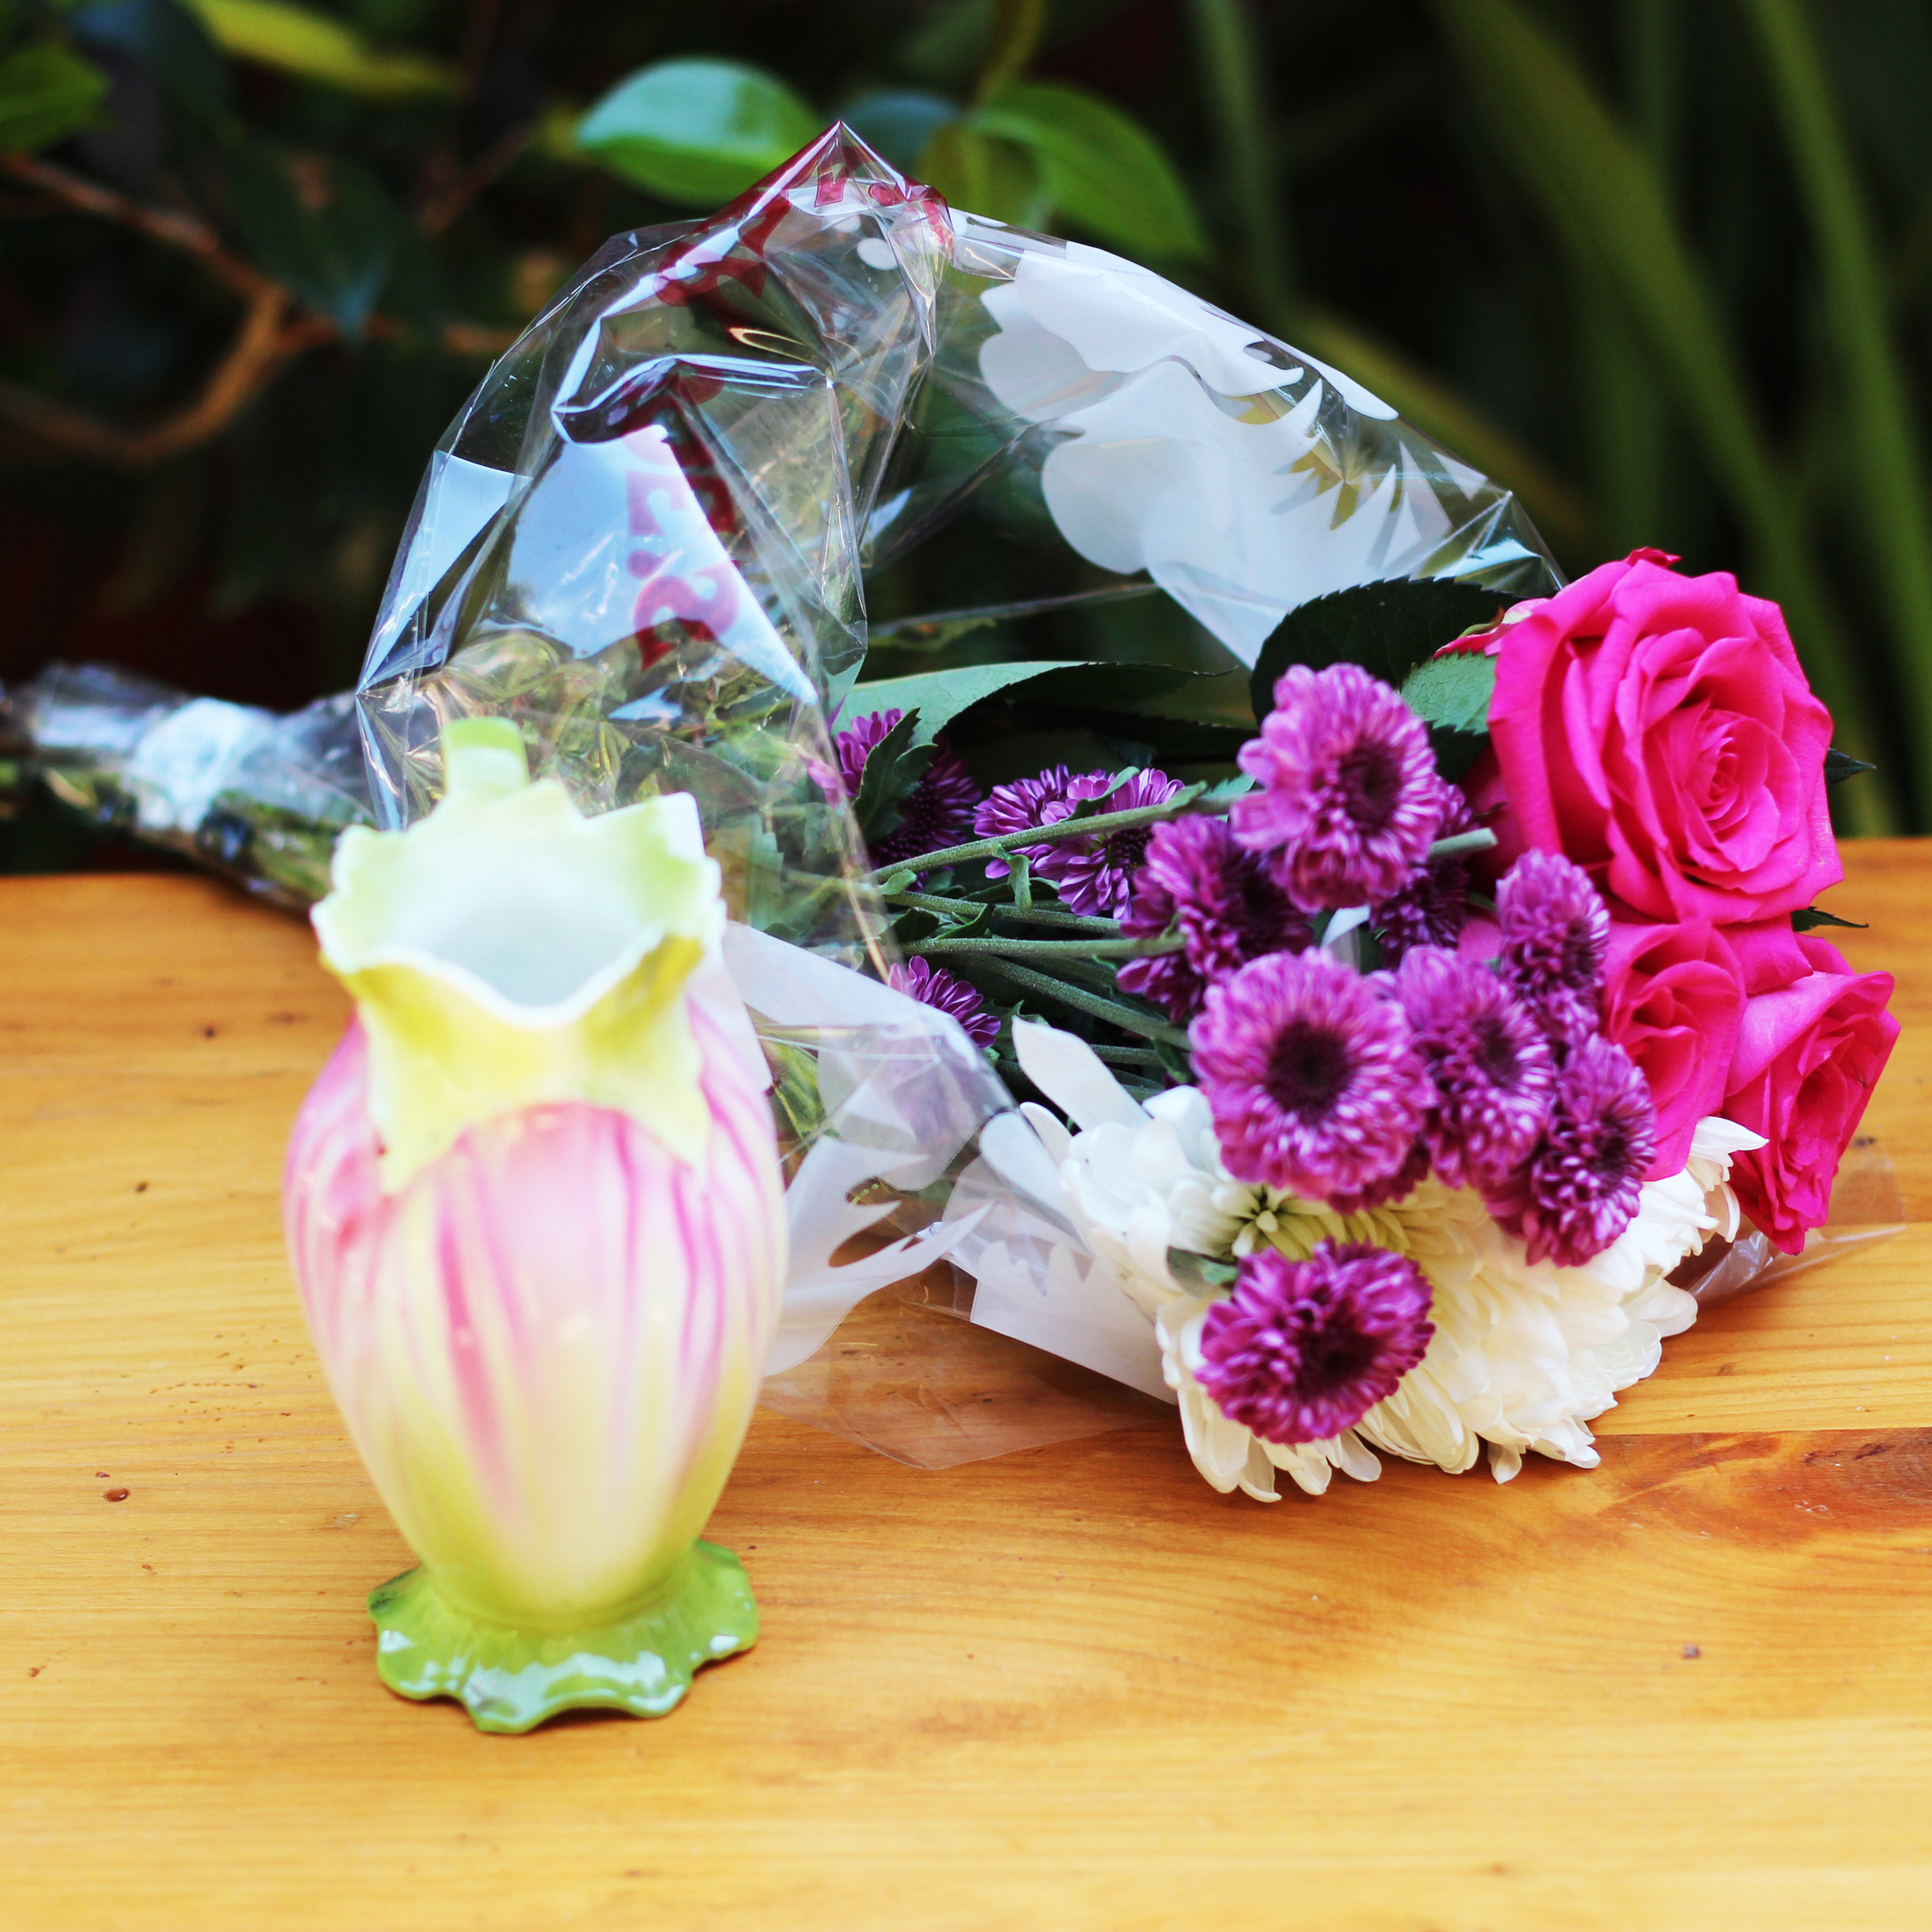 Choose a bouquet size to fit the opening of your vase.